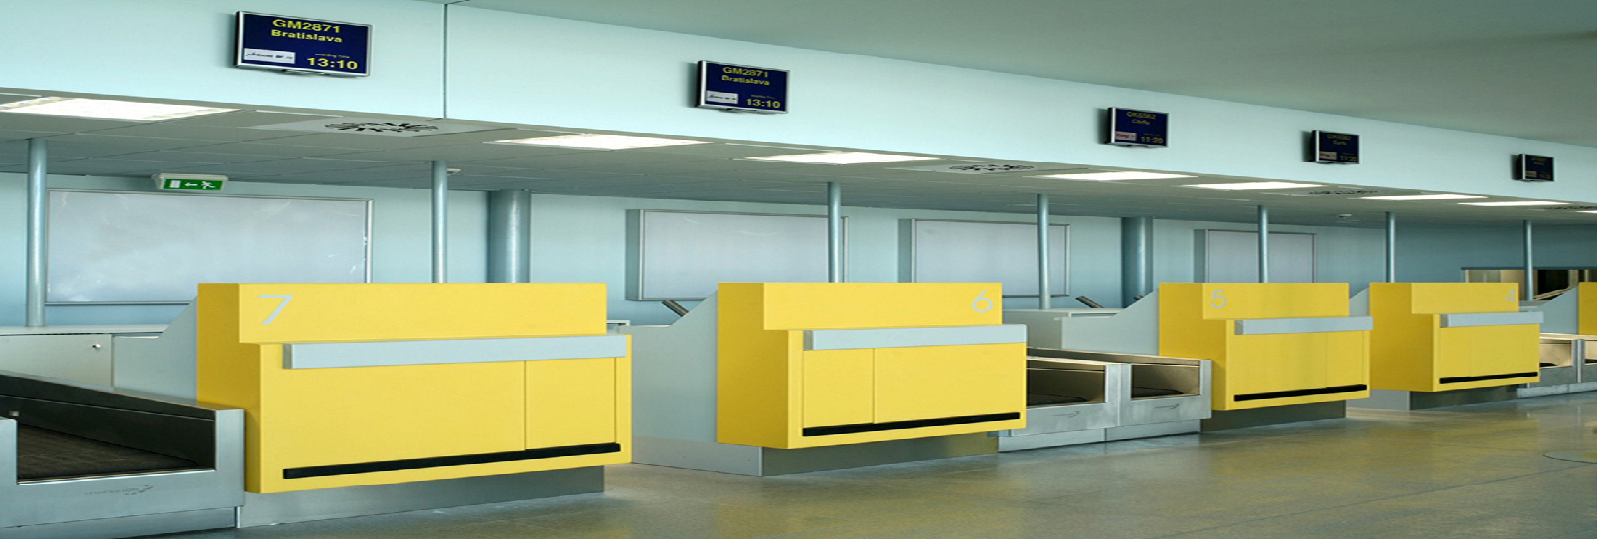 himacs-yellow-airport-desk